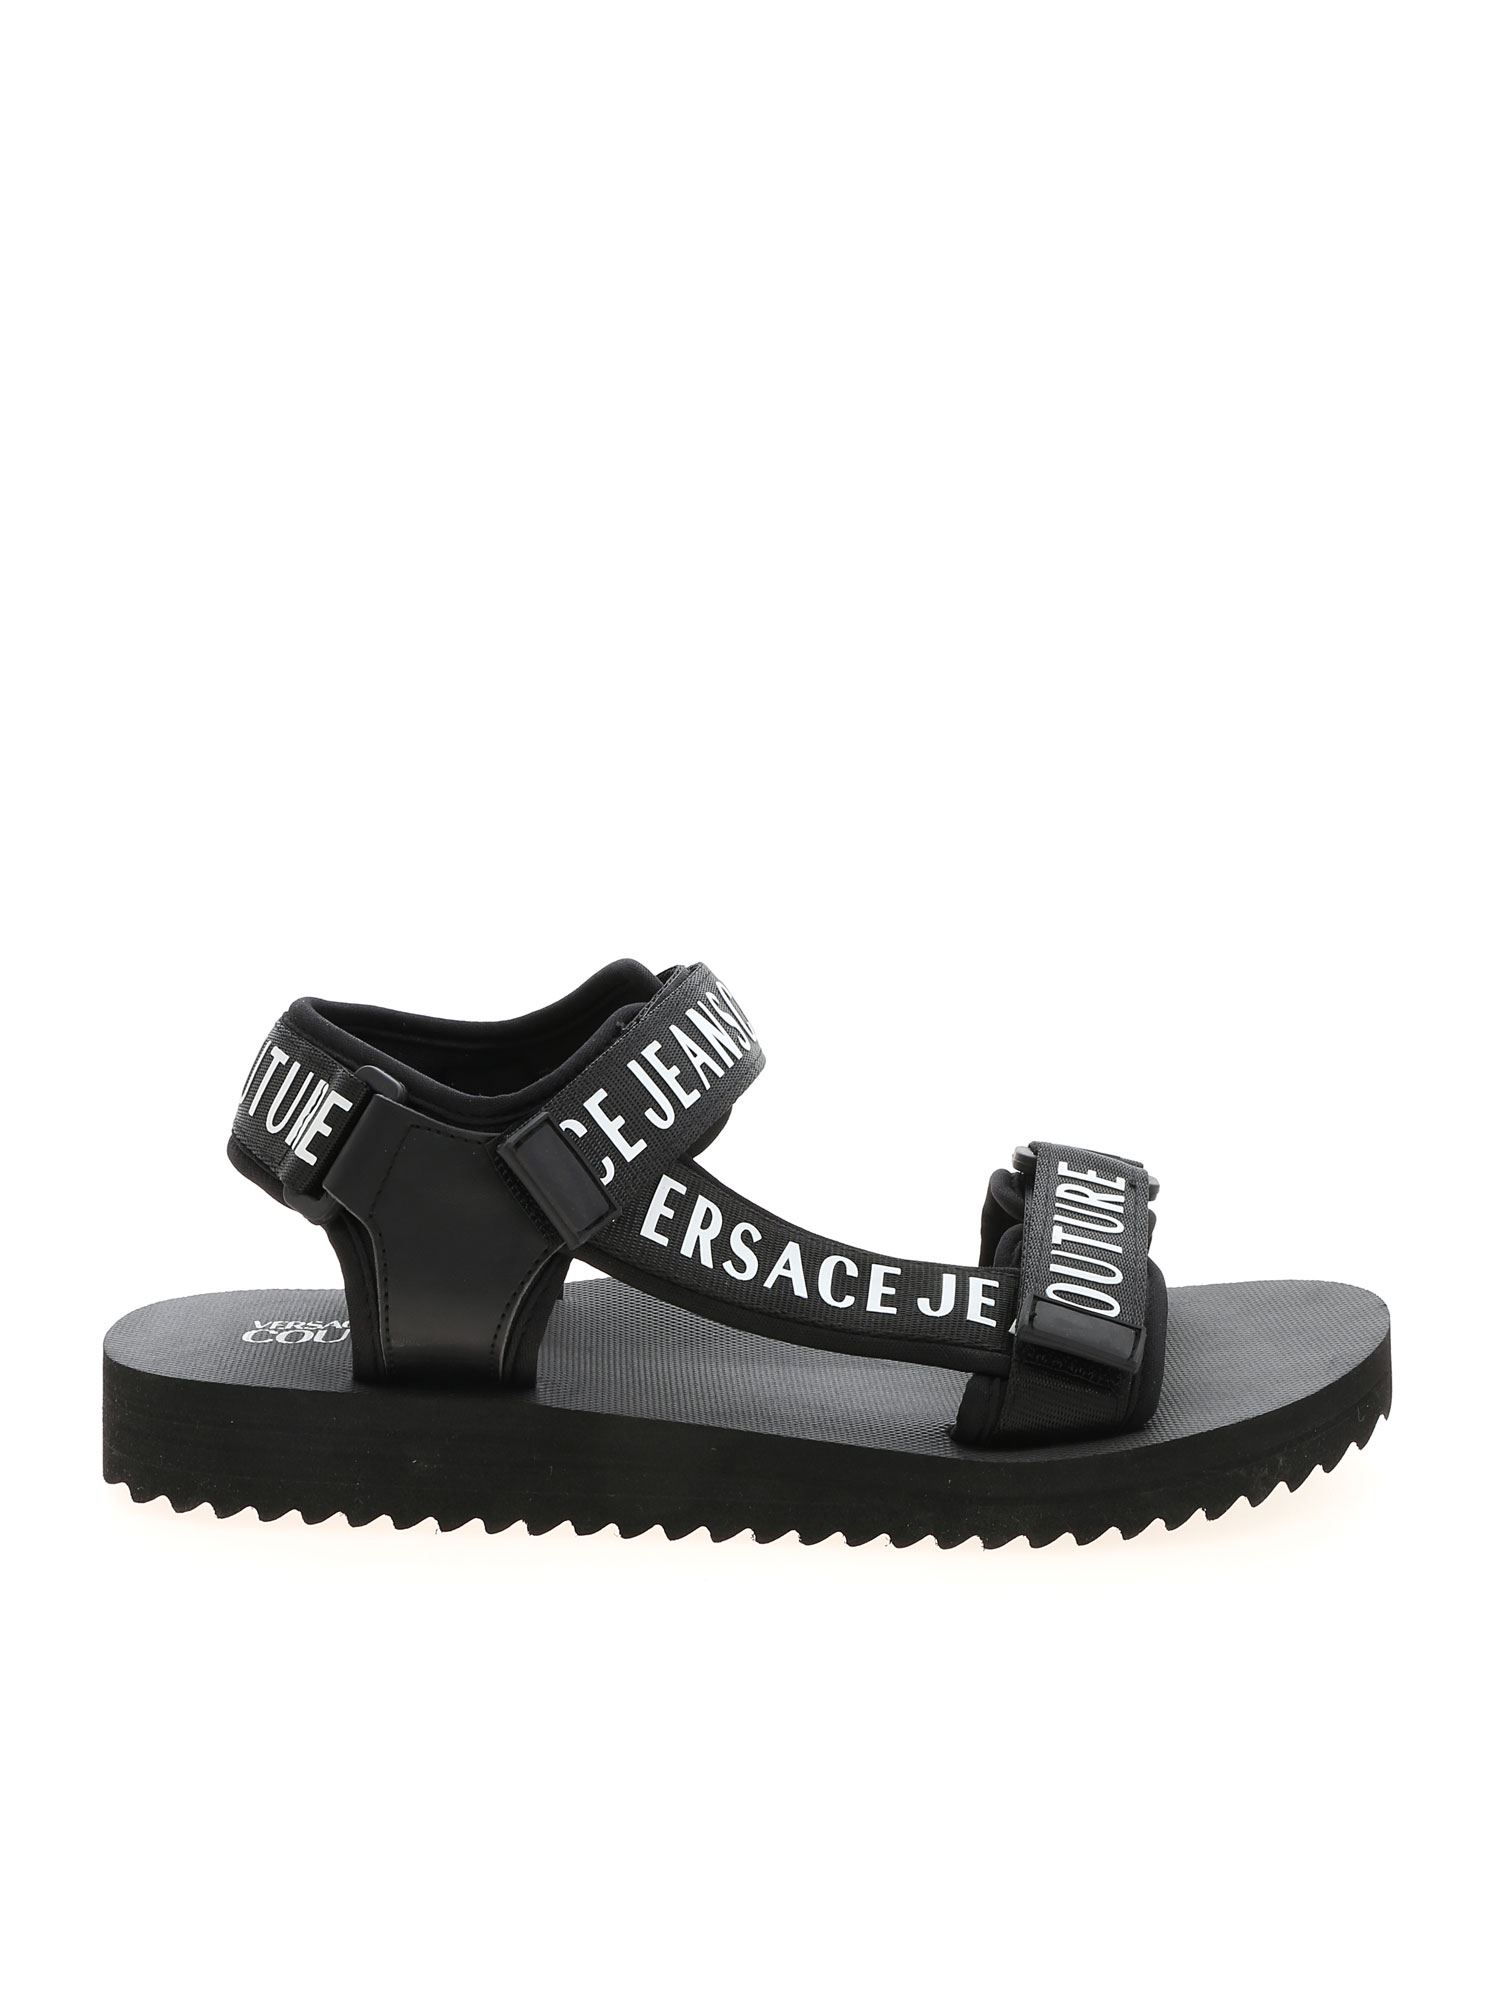 Versace Jeans Couture BRANDED VELCRO SANDALS IN BLACK AND WHITE